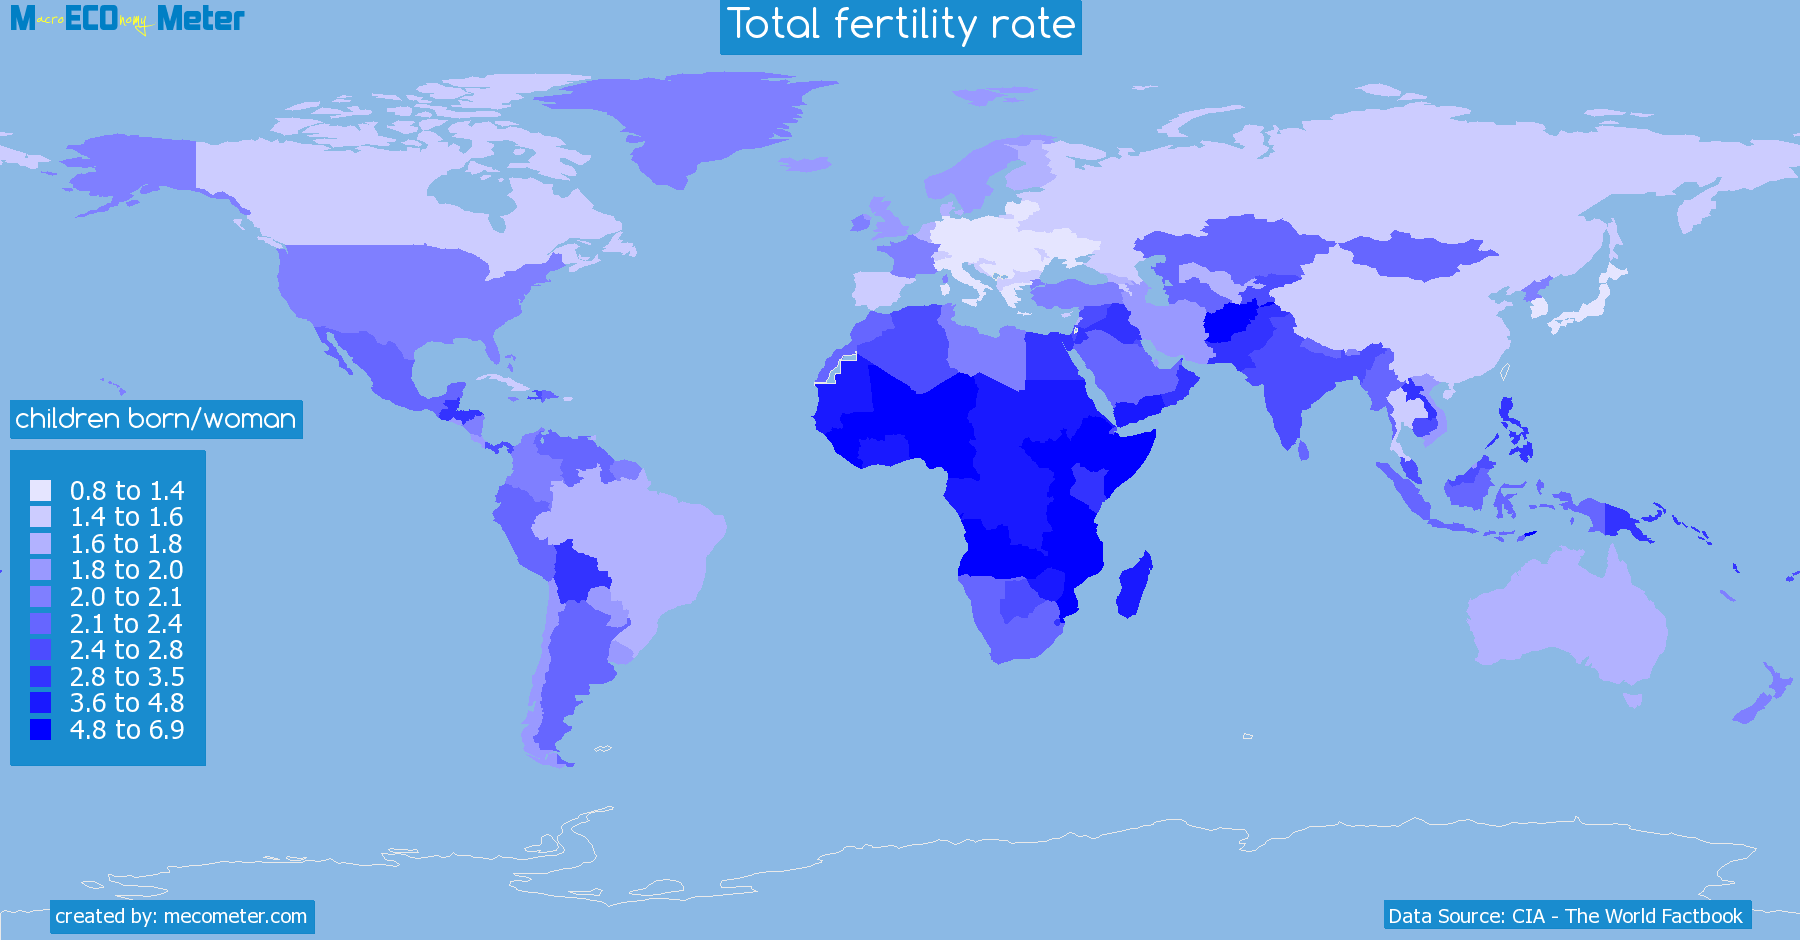 Worldmap of all countries colored to reflect the values of Total fertility rate